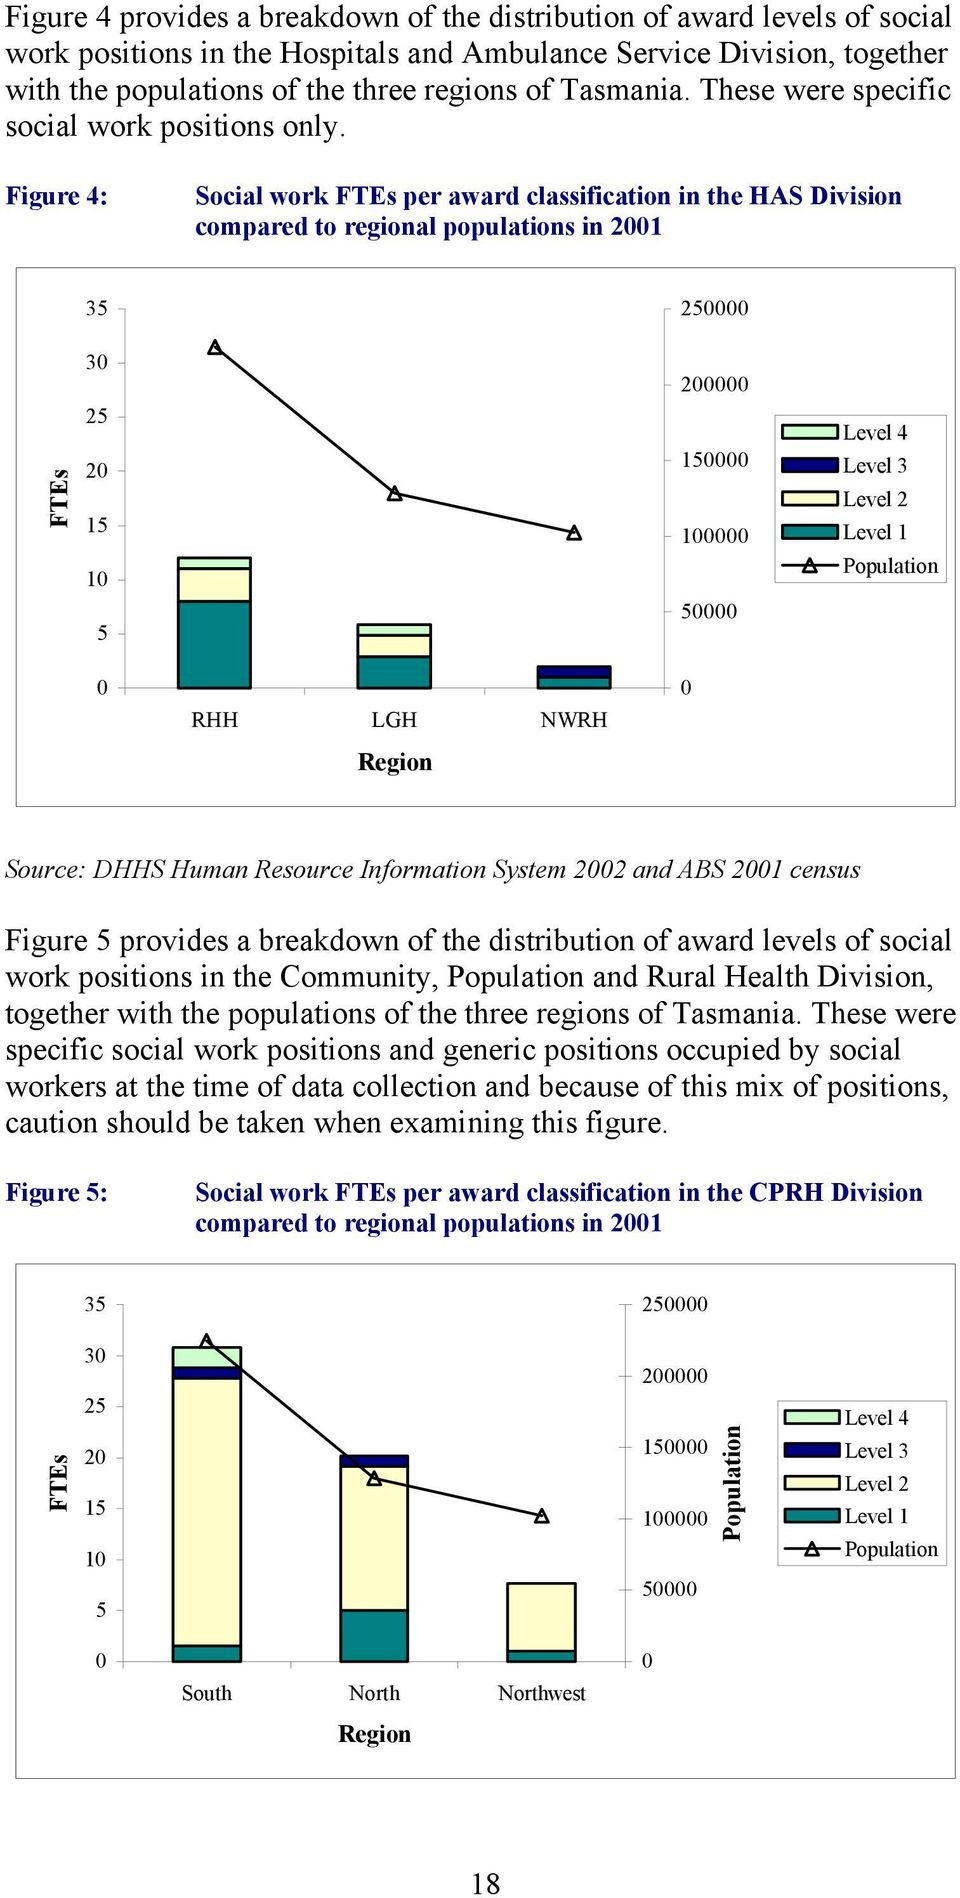 Figure 4: Social work FTEs per award classification in the HAS Division compared to regional populations in 2001 35 250000 FTEs 30 25 20 15 10 5 200000 150000 100000 50000 Level 4 Level 3 Level 2